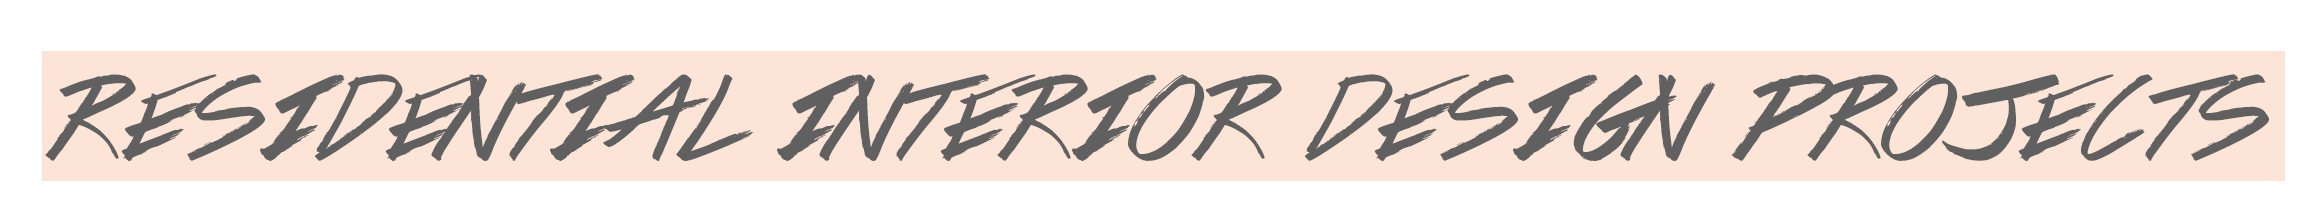 Residential Interior Design Projects Header.png